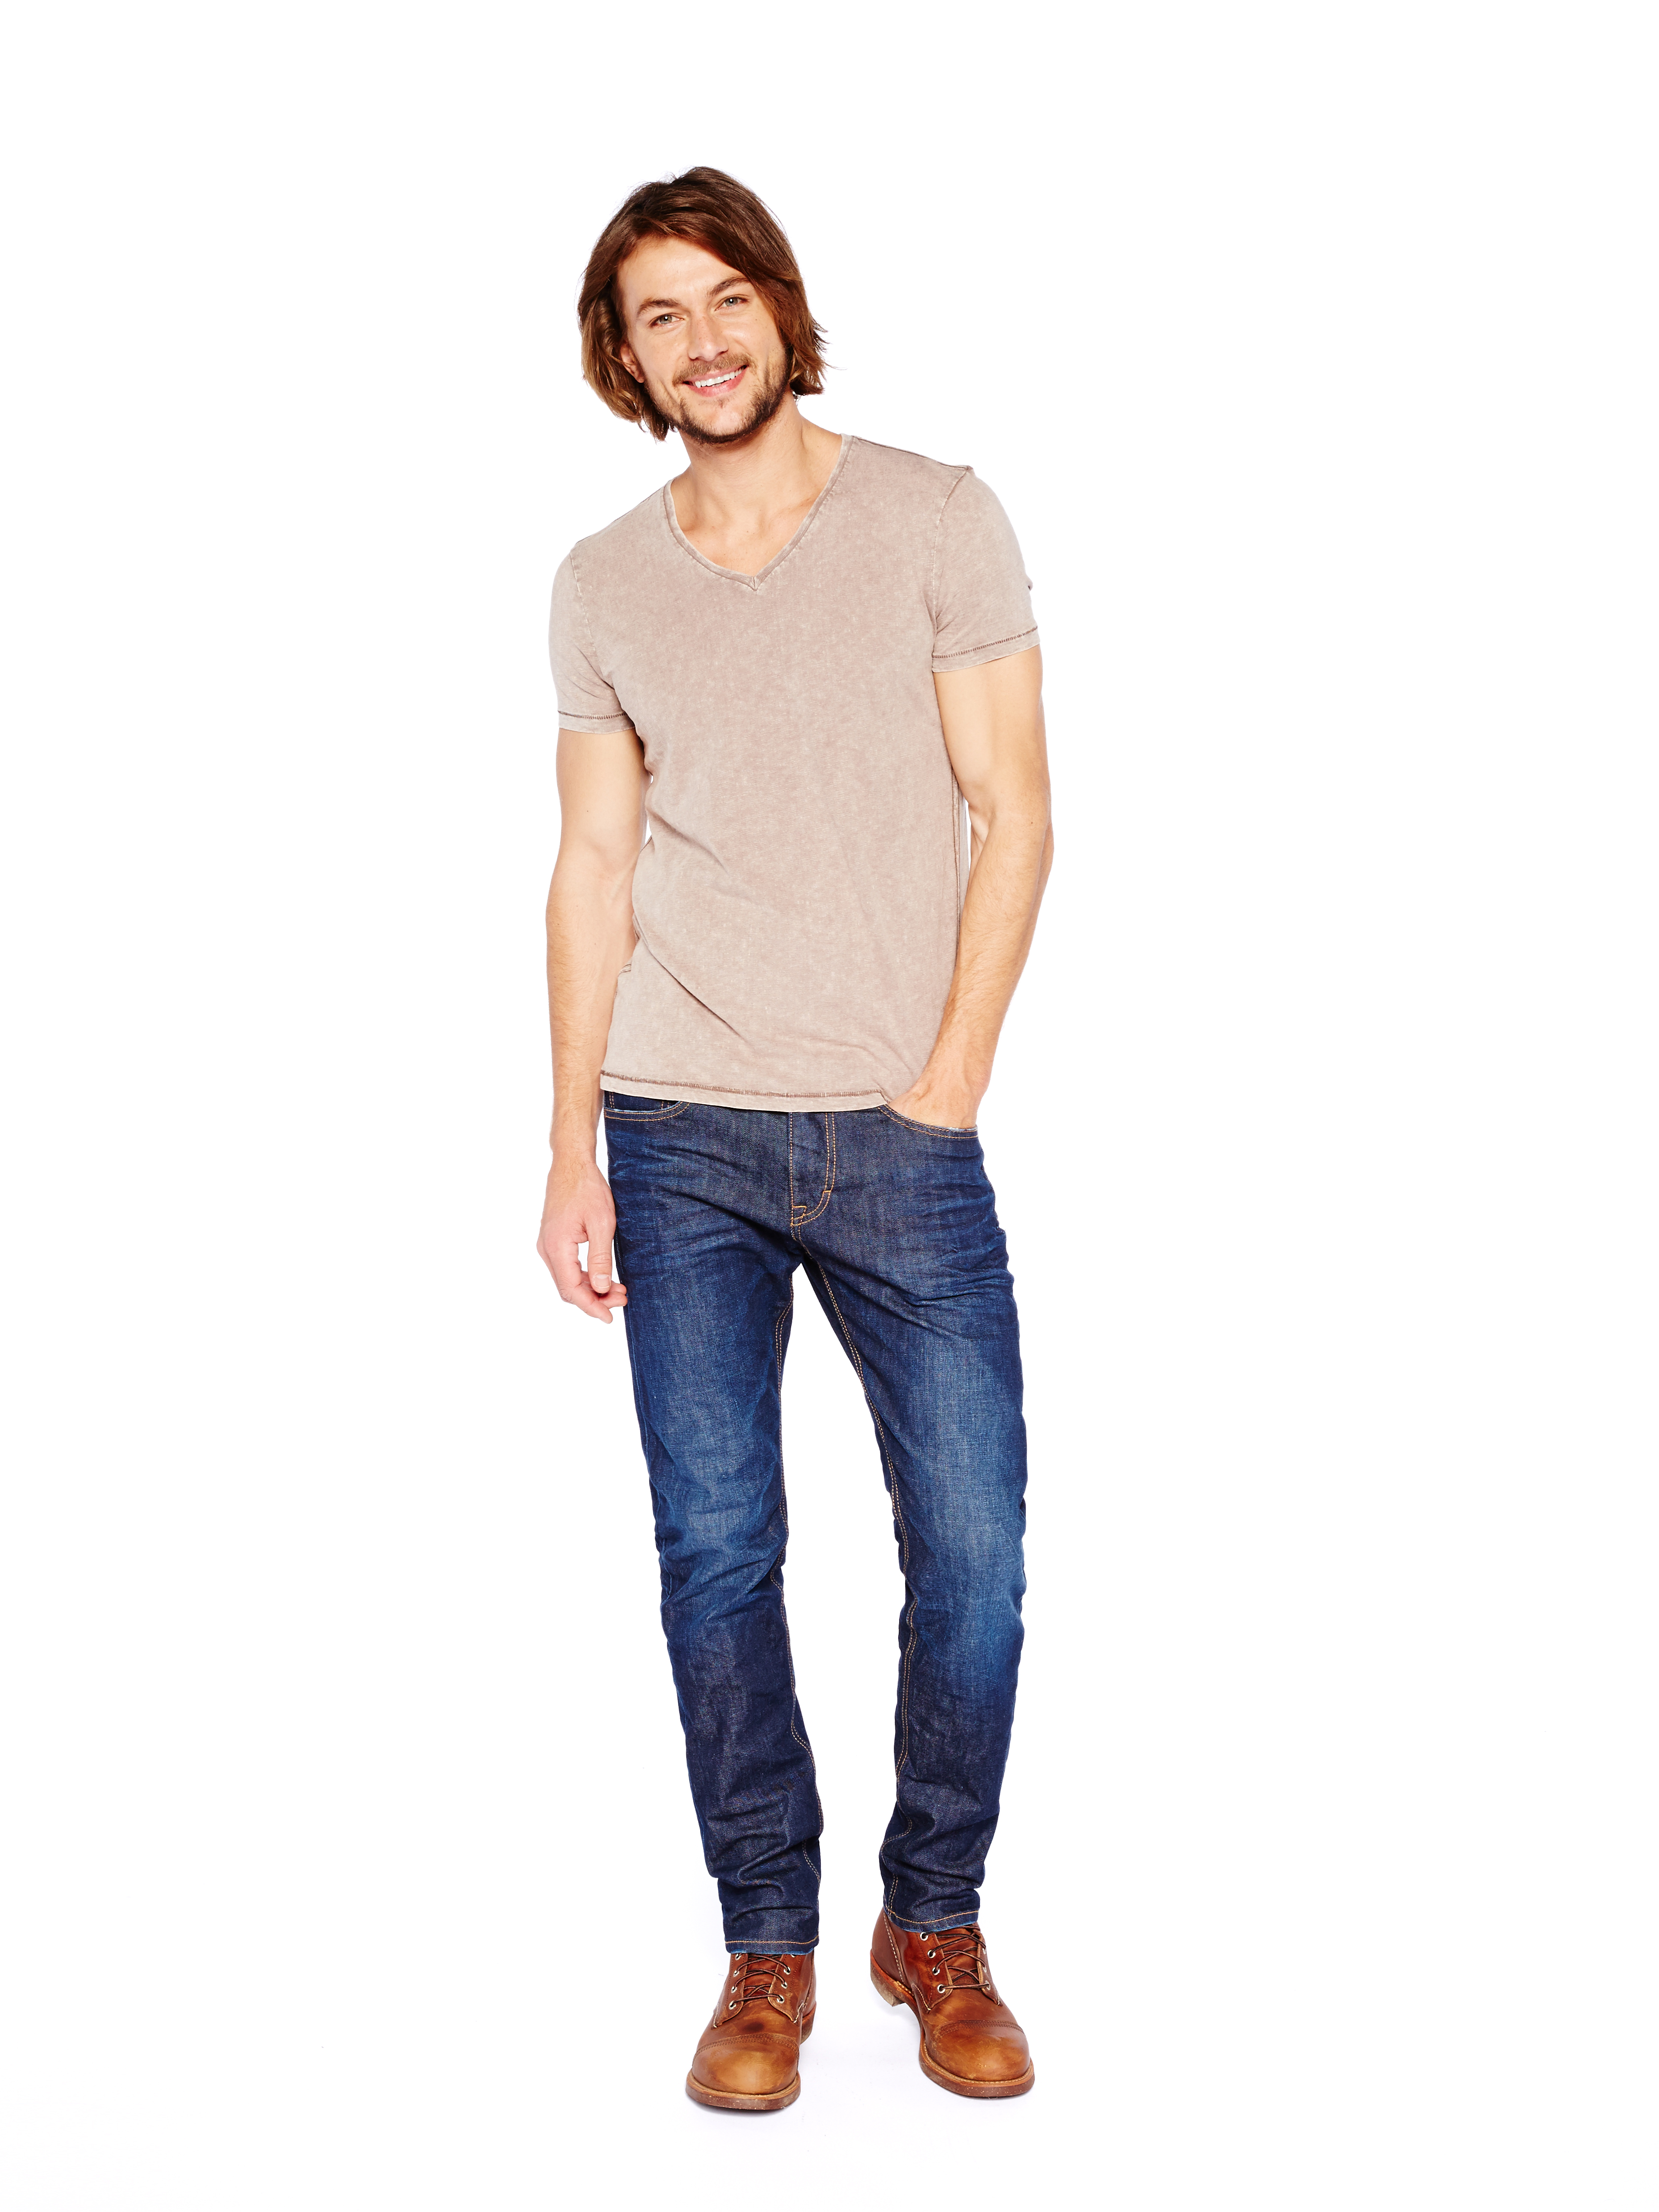 Colorado Jeans C938 Tapered